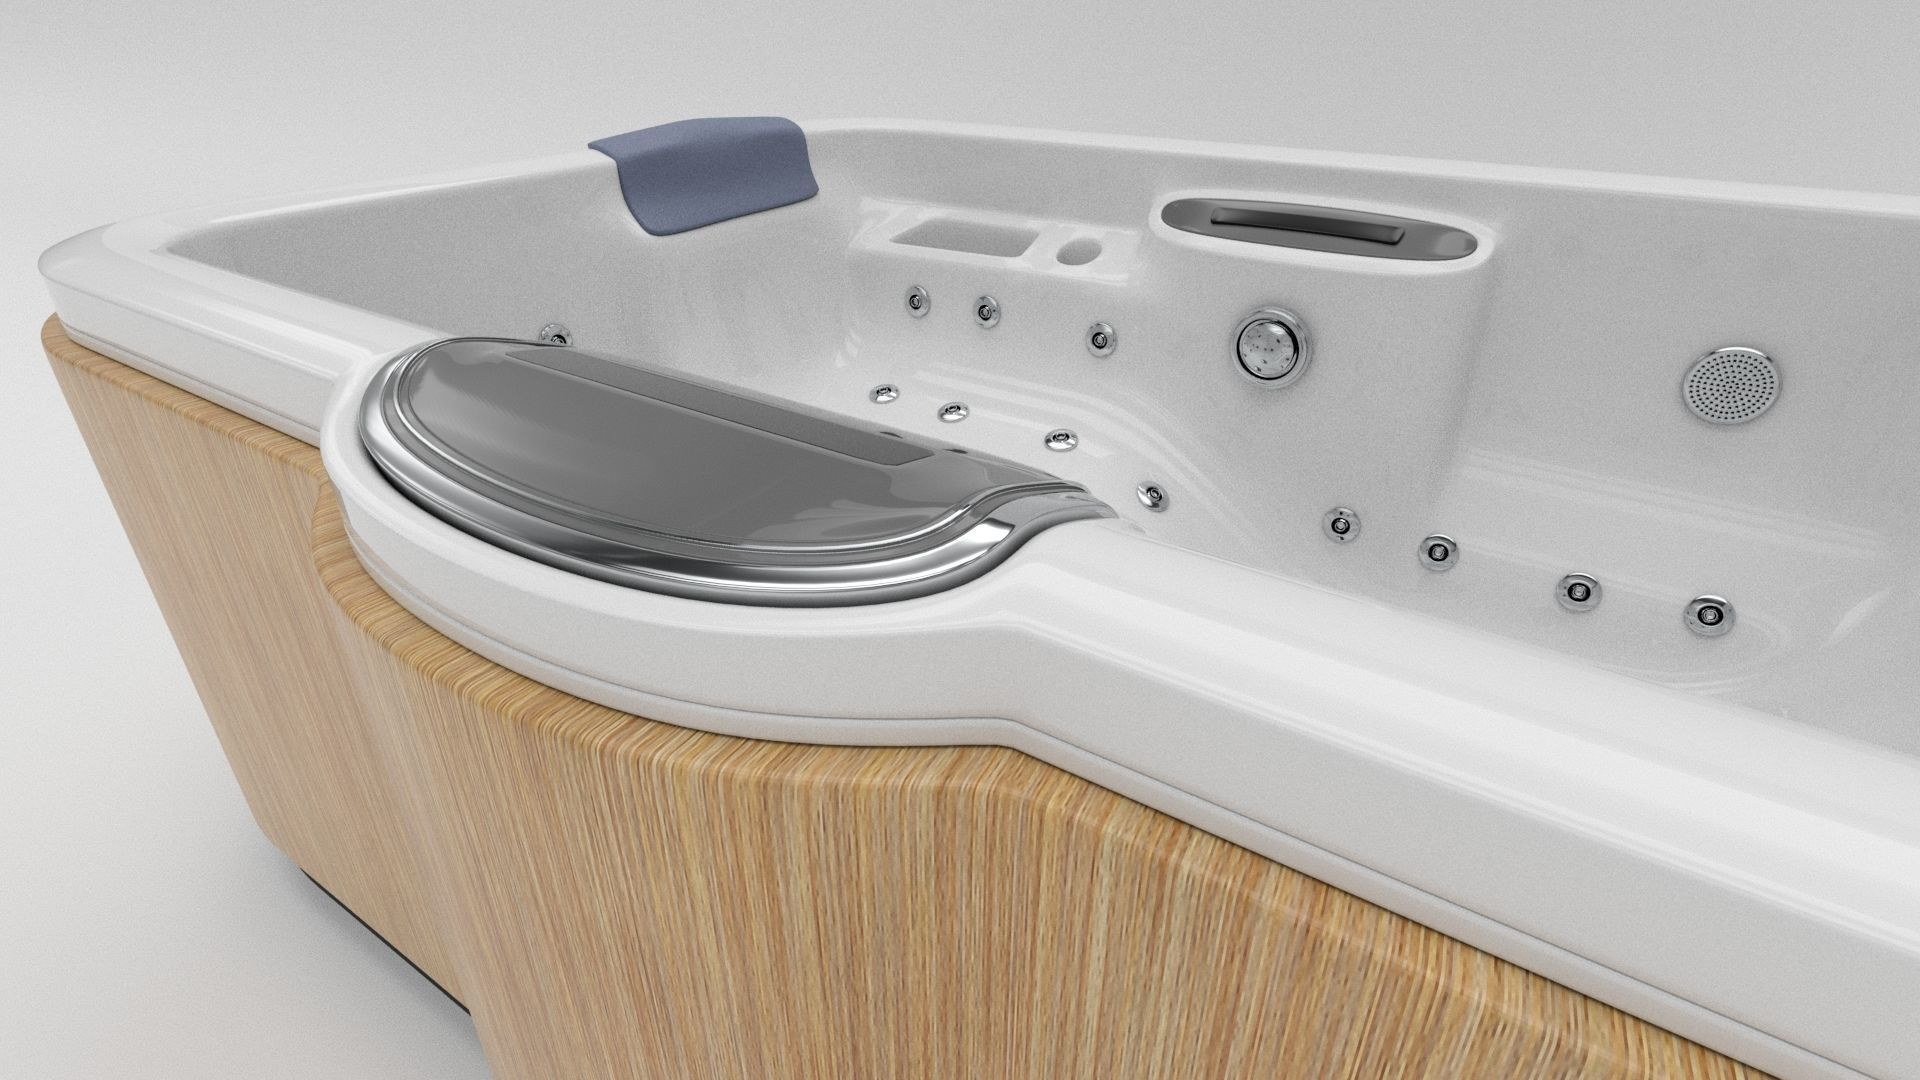 3D Model Hot Tub Whirlpool Spa Vr Ar Low Poly Max